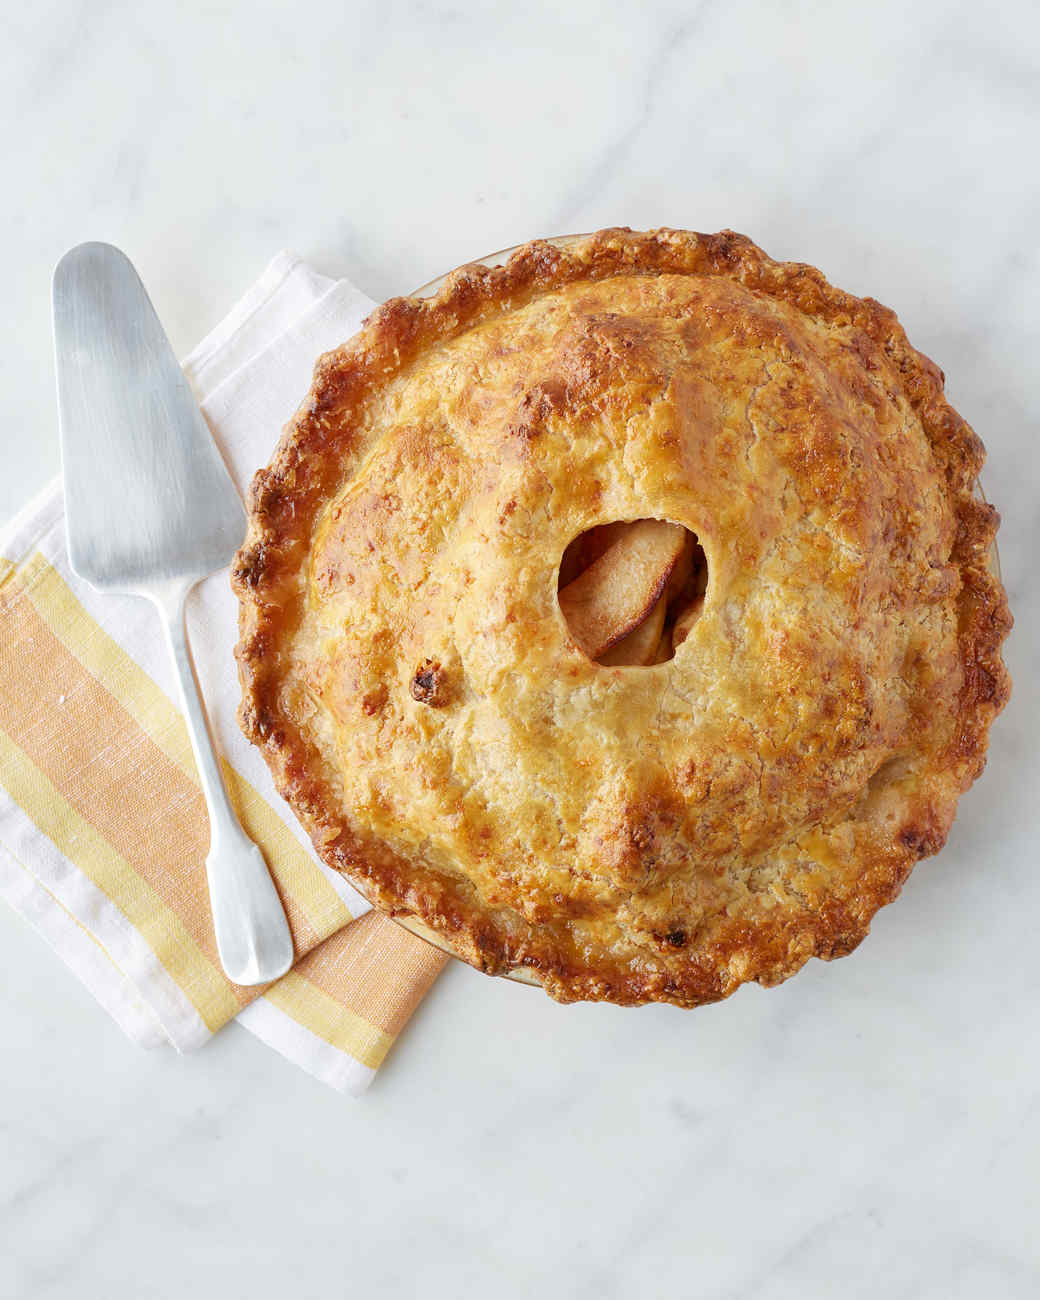 Cheddar-Crusted Apple Pie forecasting